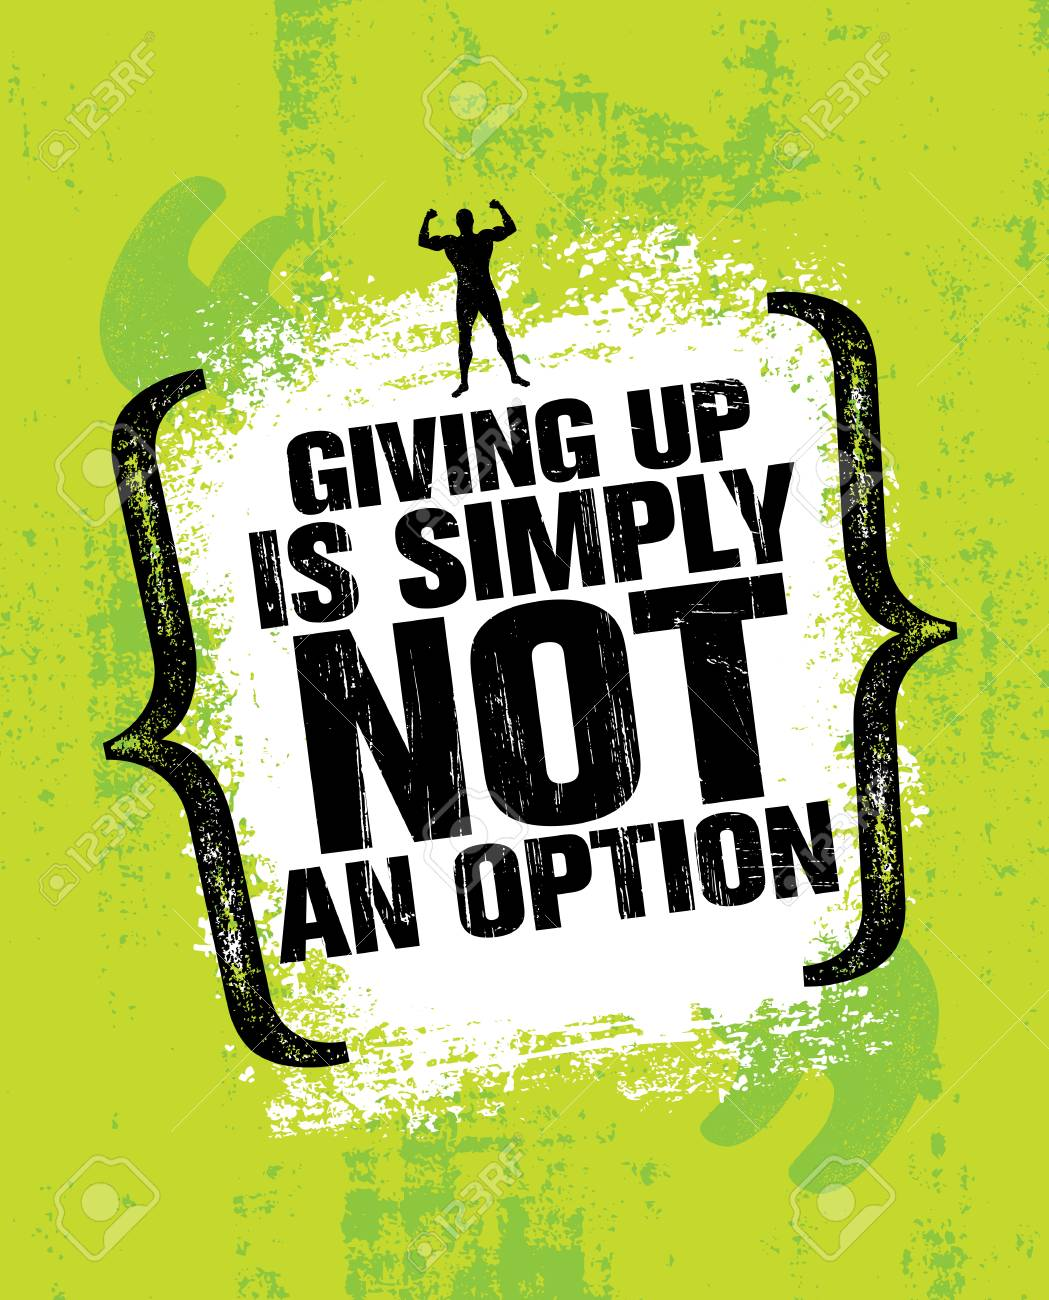 Giving Up Is Simply Not An Option. Sport Inspiring Workout and Fitness Gym Motivation Quote Illustration. - 74217652